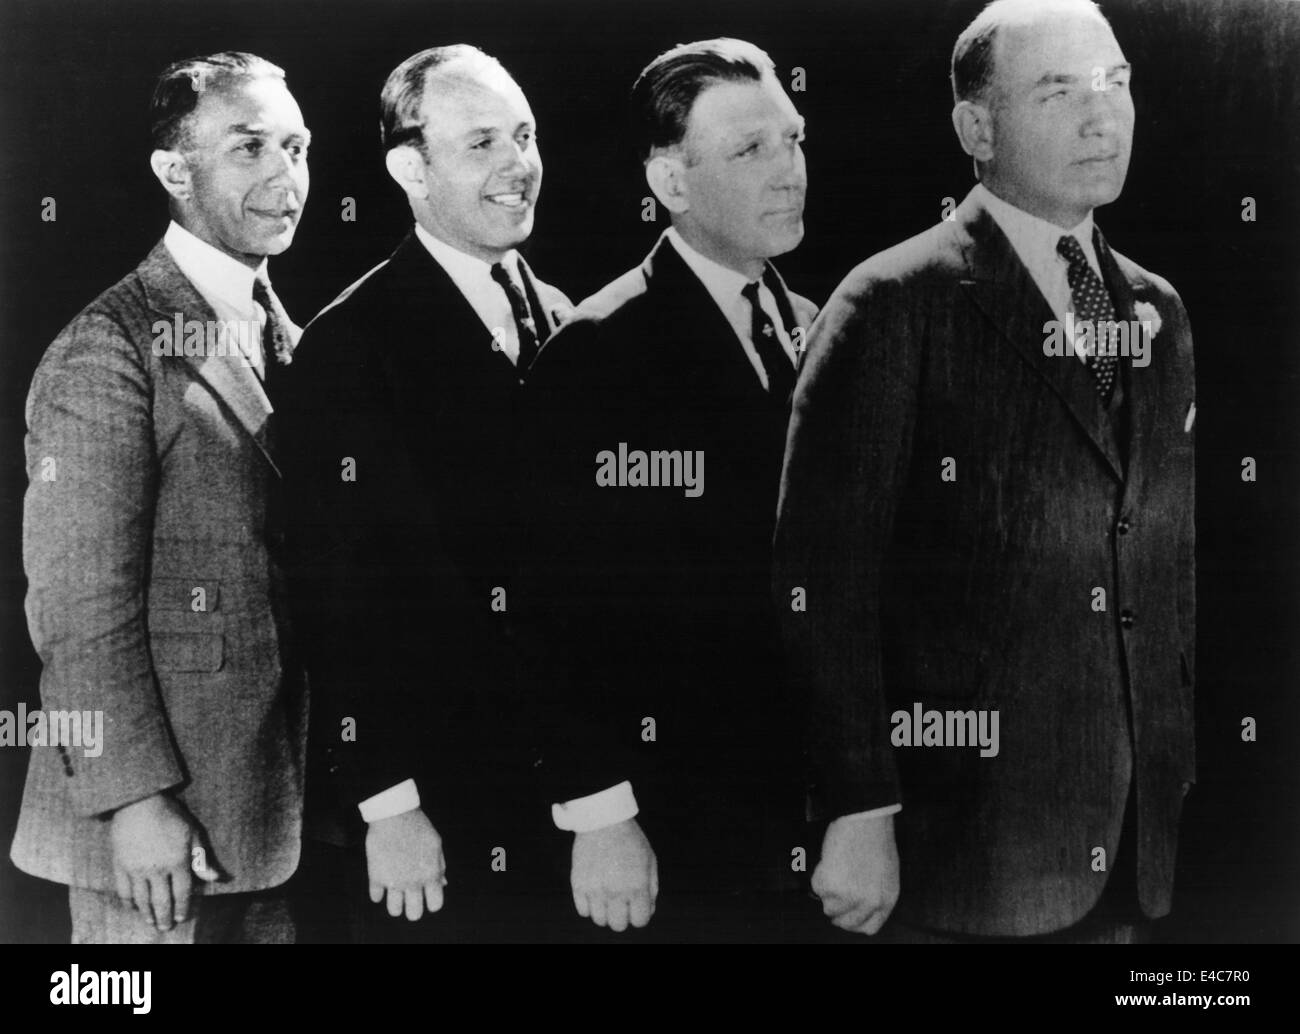 The Warner Brothers, Harry, Jack, Sam, and Albert, Film Executives at Warner Brothers Studios, Portrait, circa 1920's - Stock Image